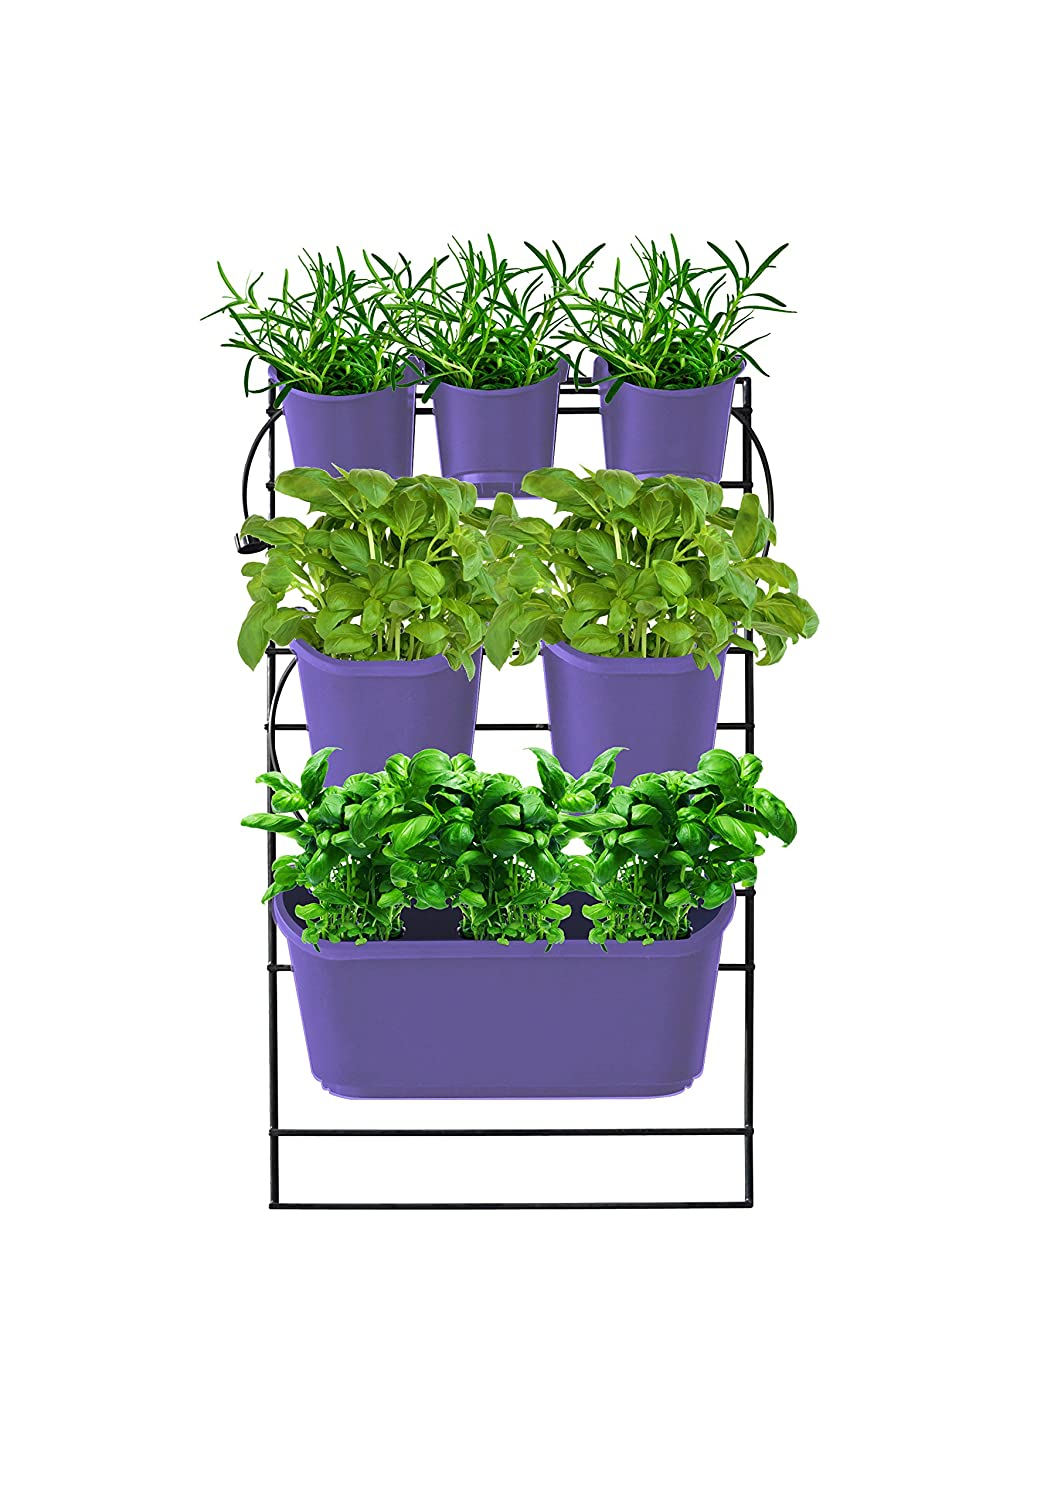 Watex WX058 Mounted Green Wall, Violet Vertical Planter, Purple